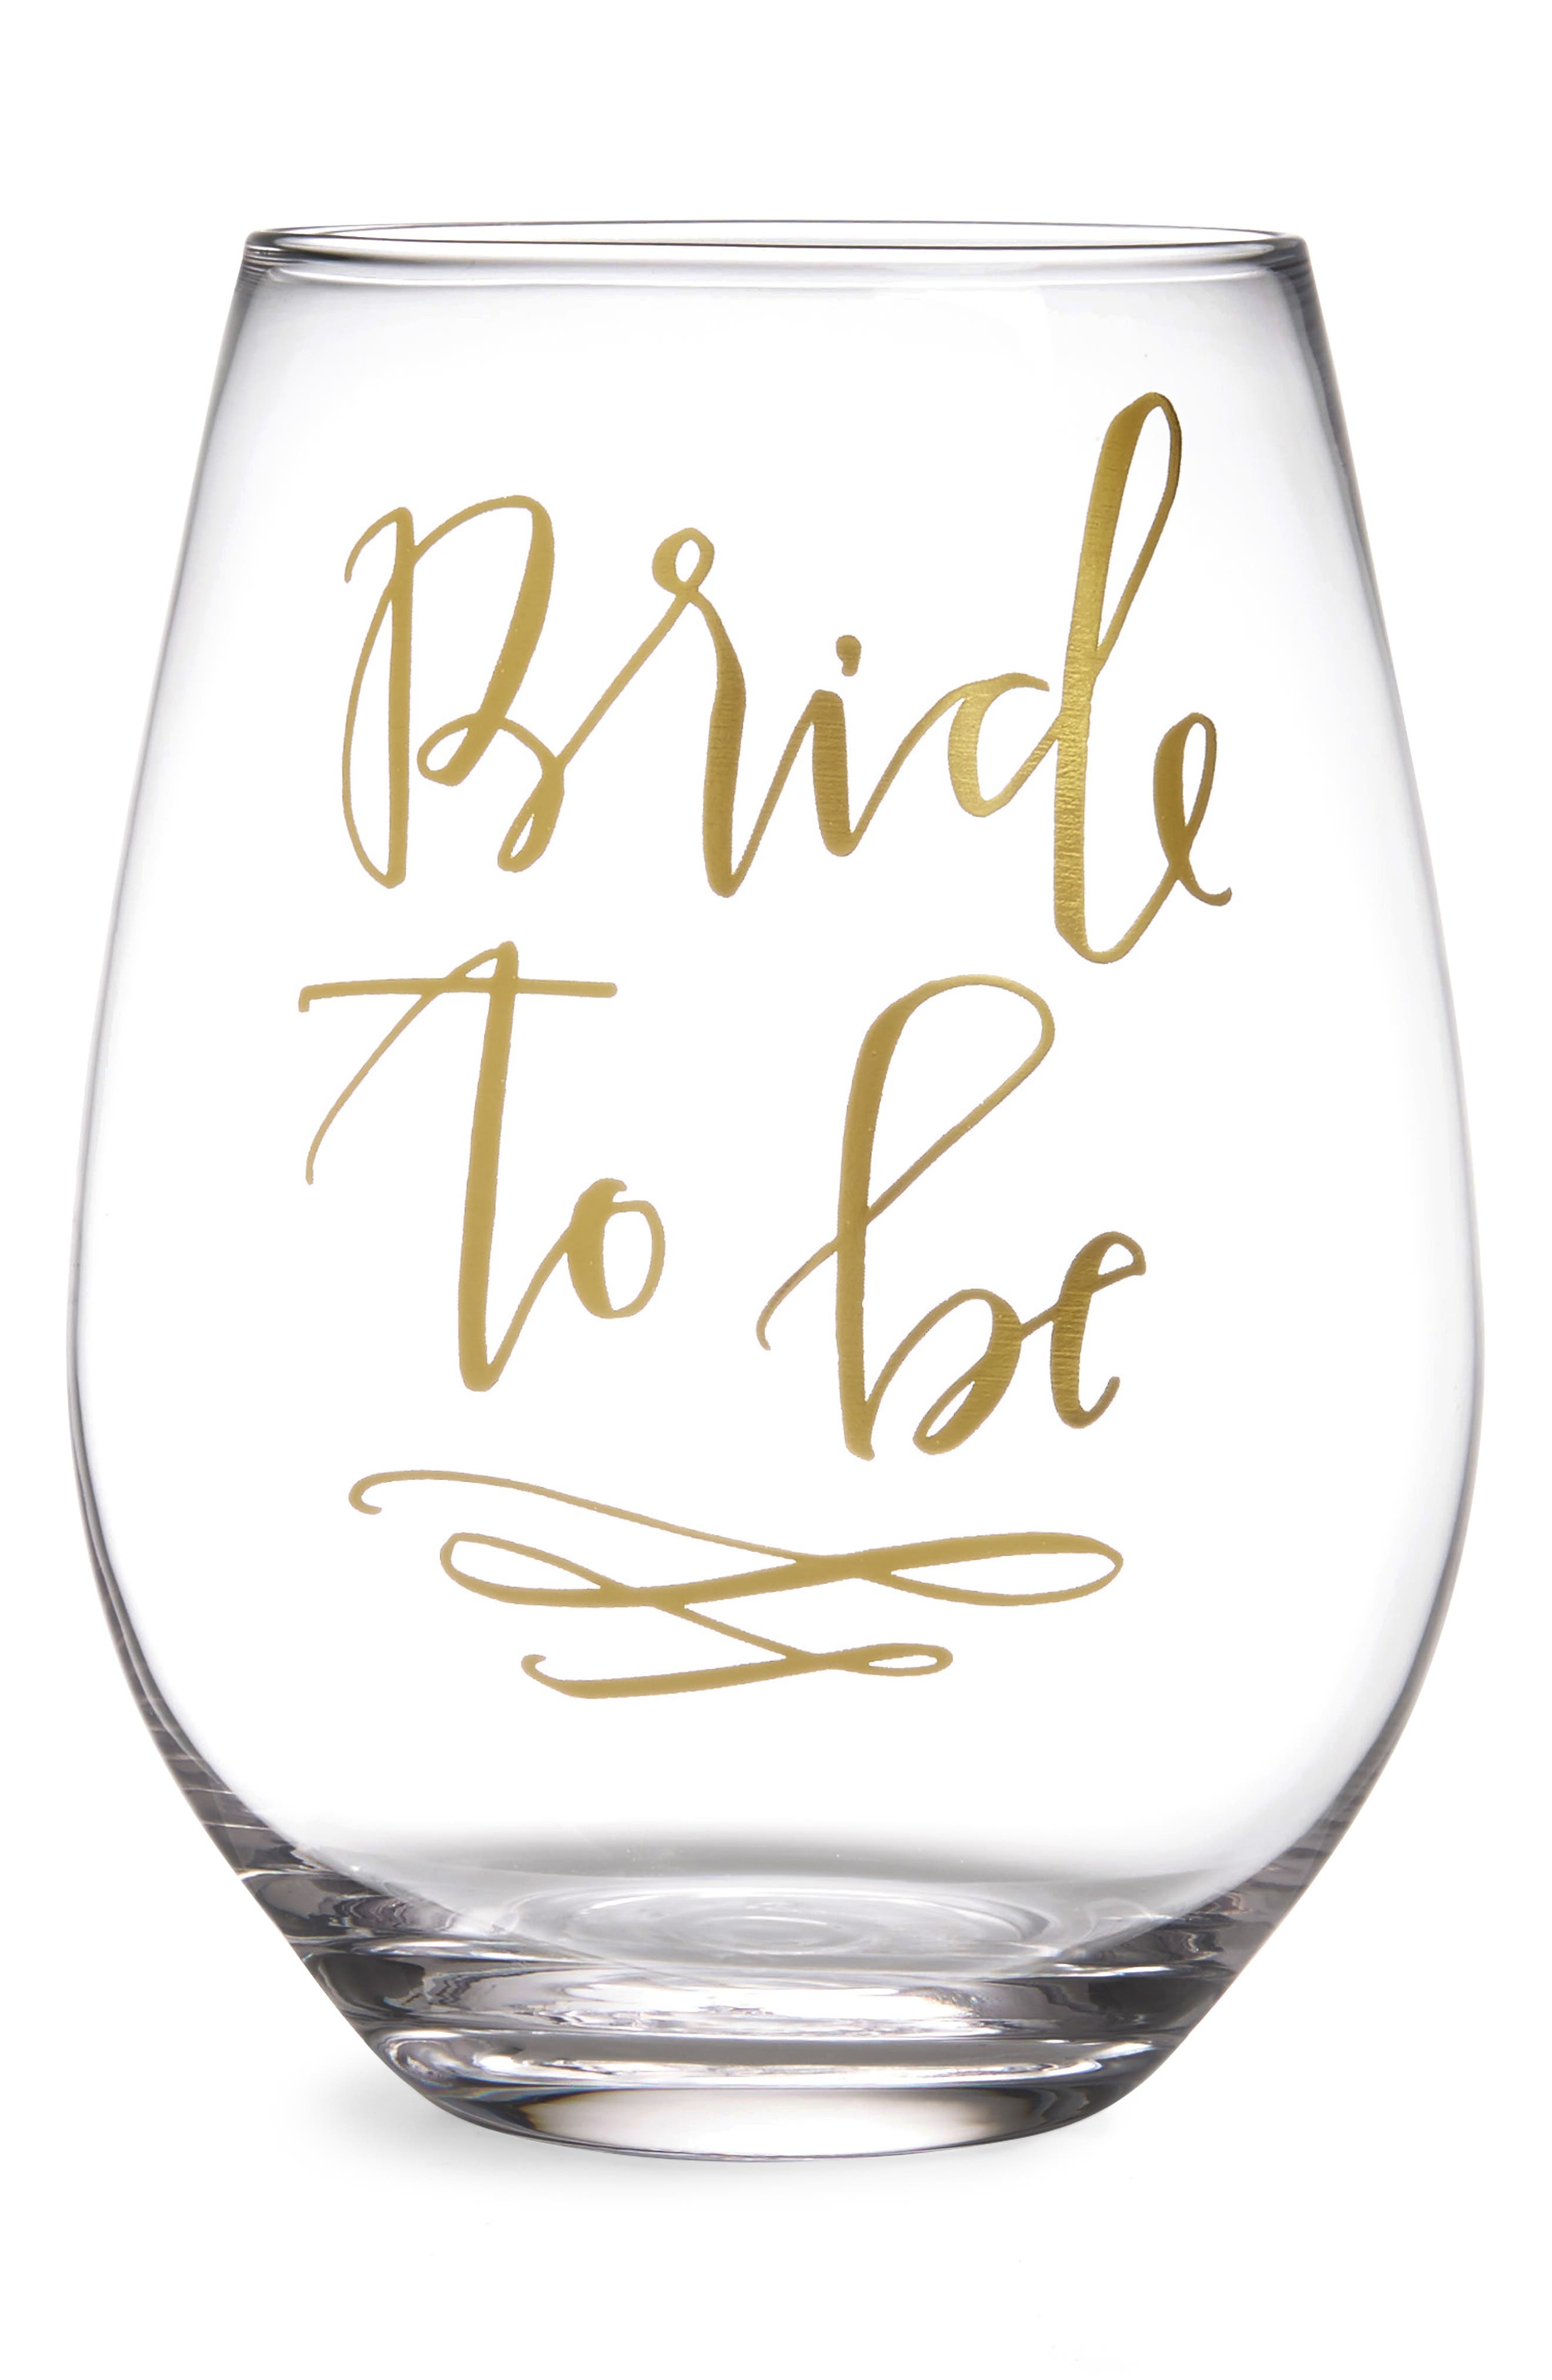 Bride To Be Stemless Wine Glass,                             Main thumbnail 1, color,                             Gold